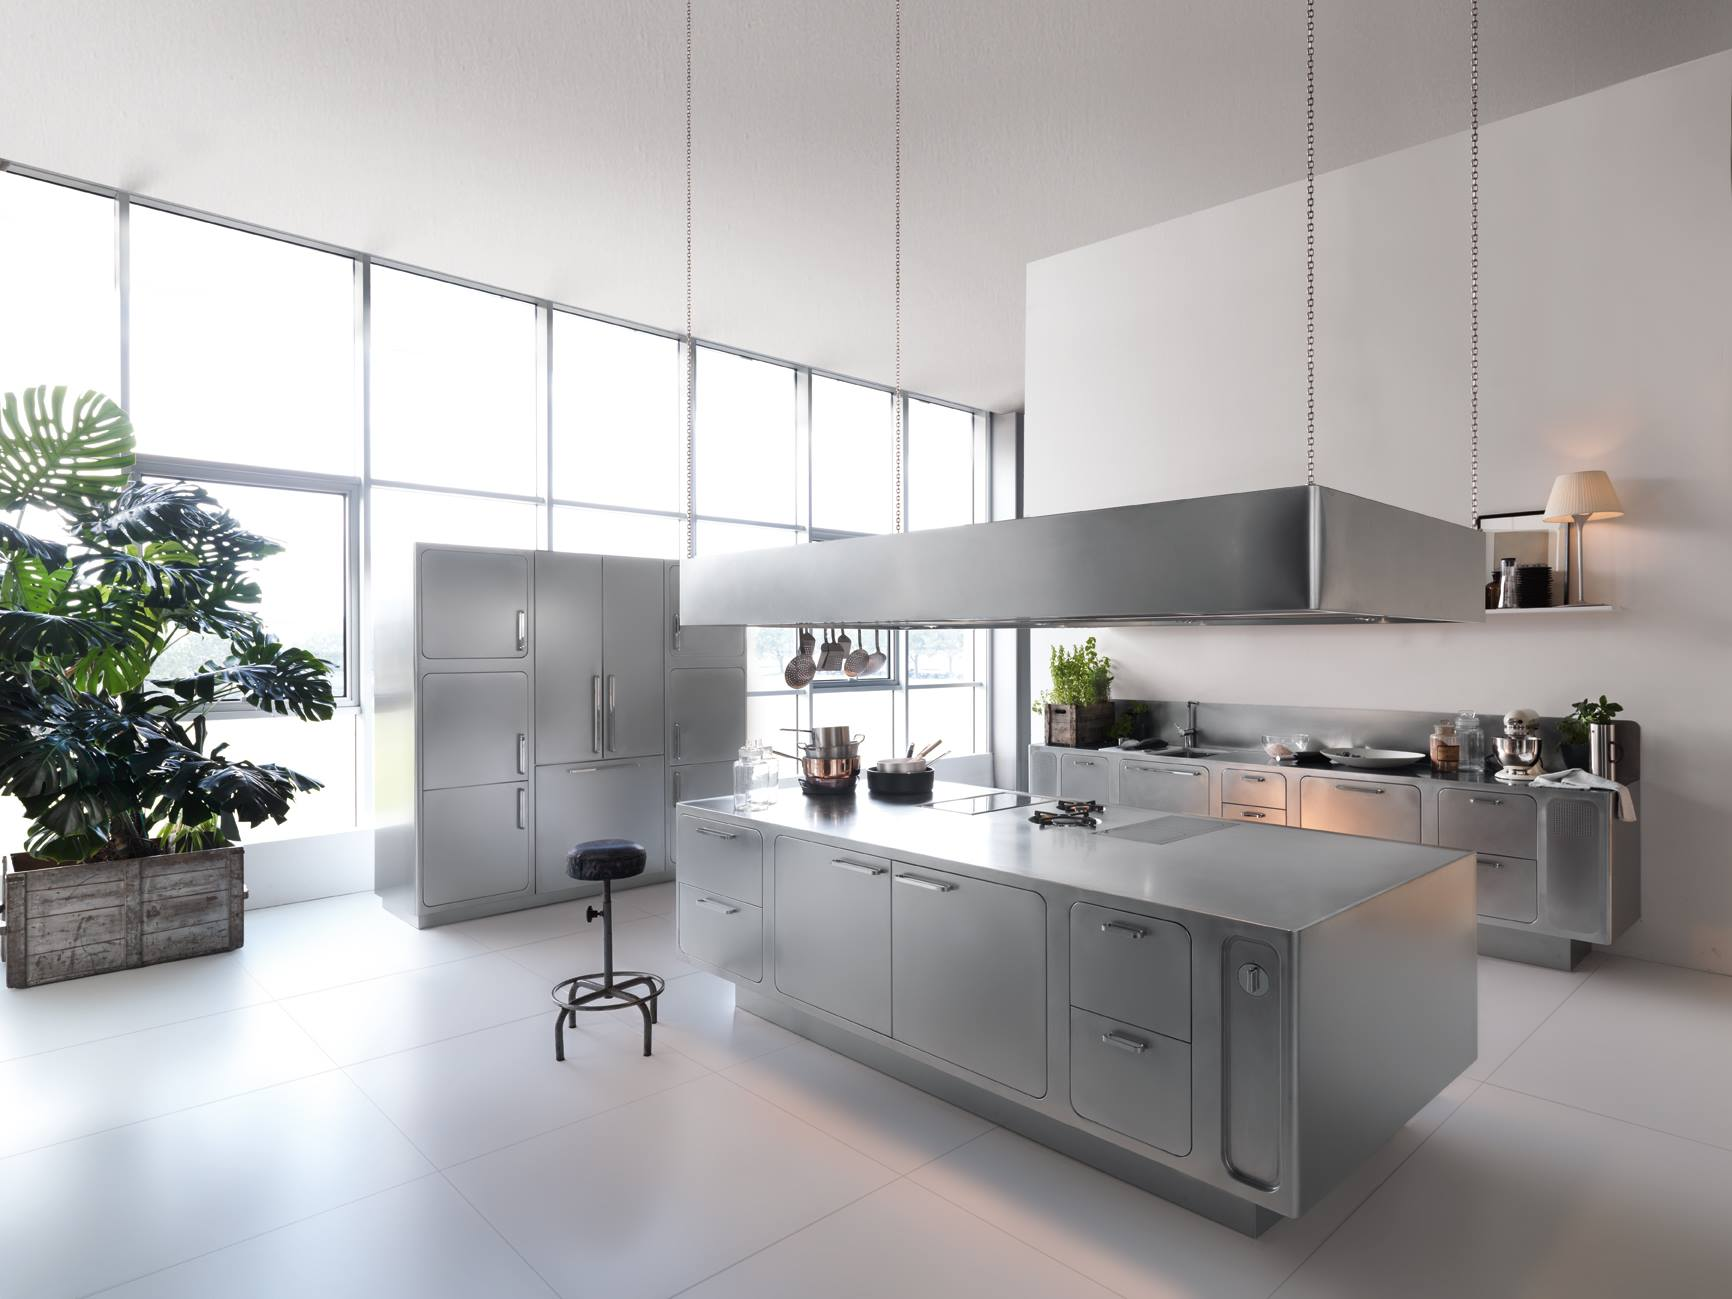 Cook like a masterchef european kitchen for Kitchens by design